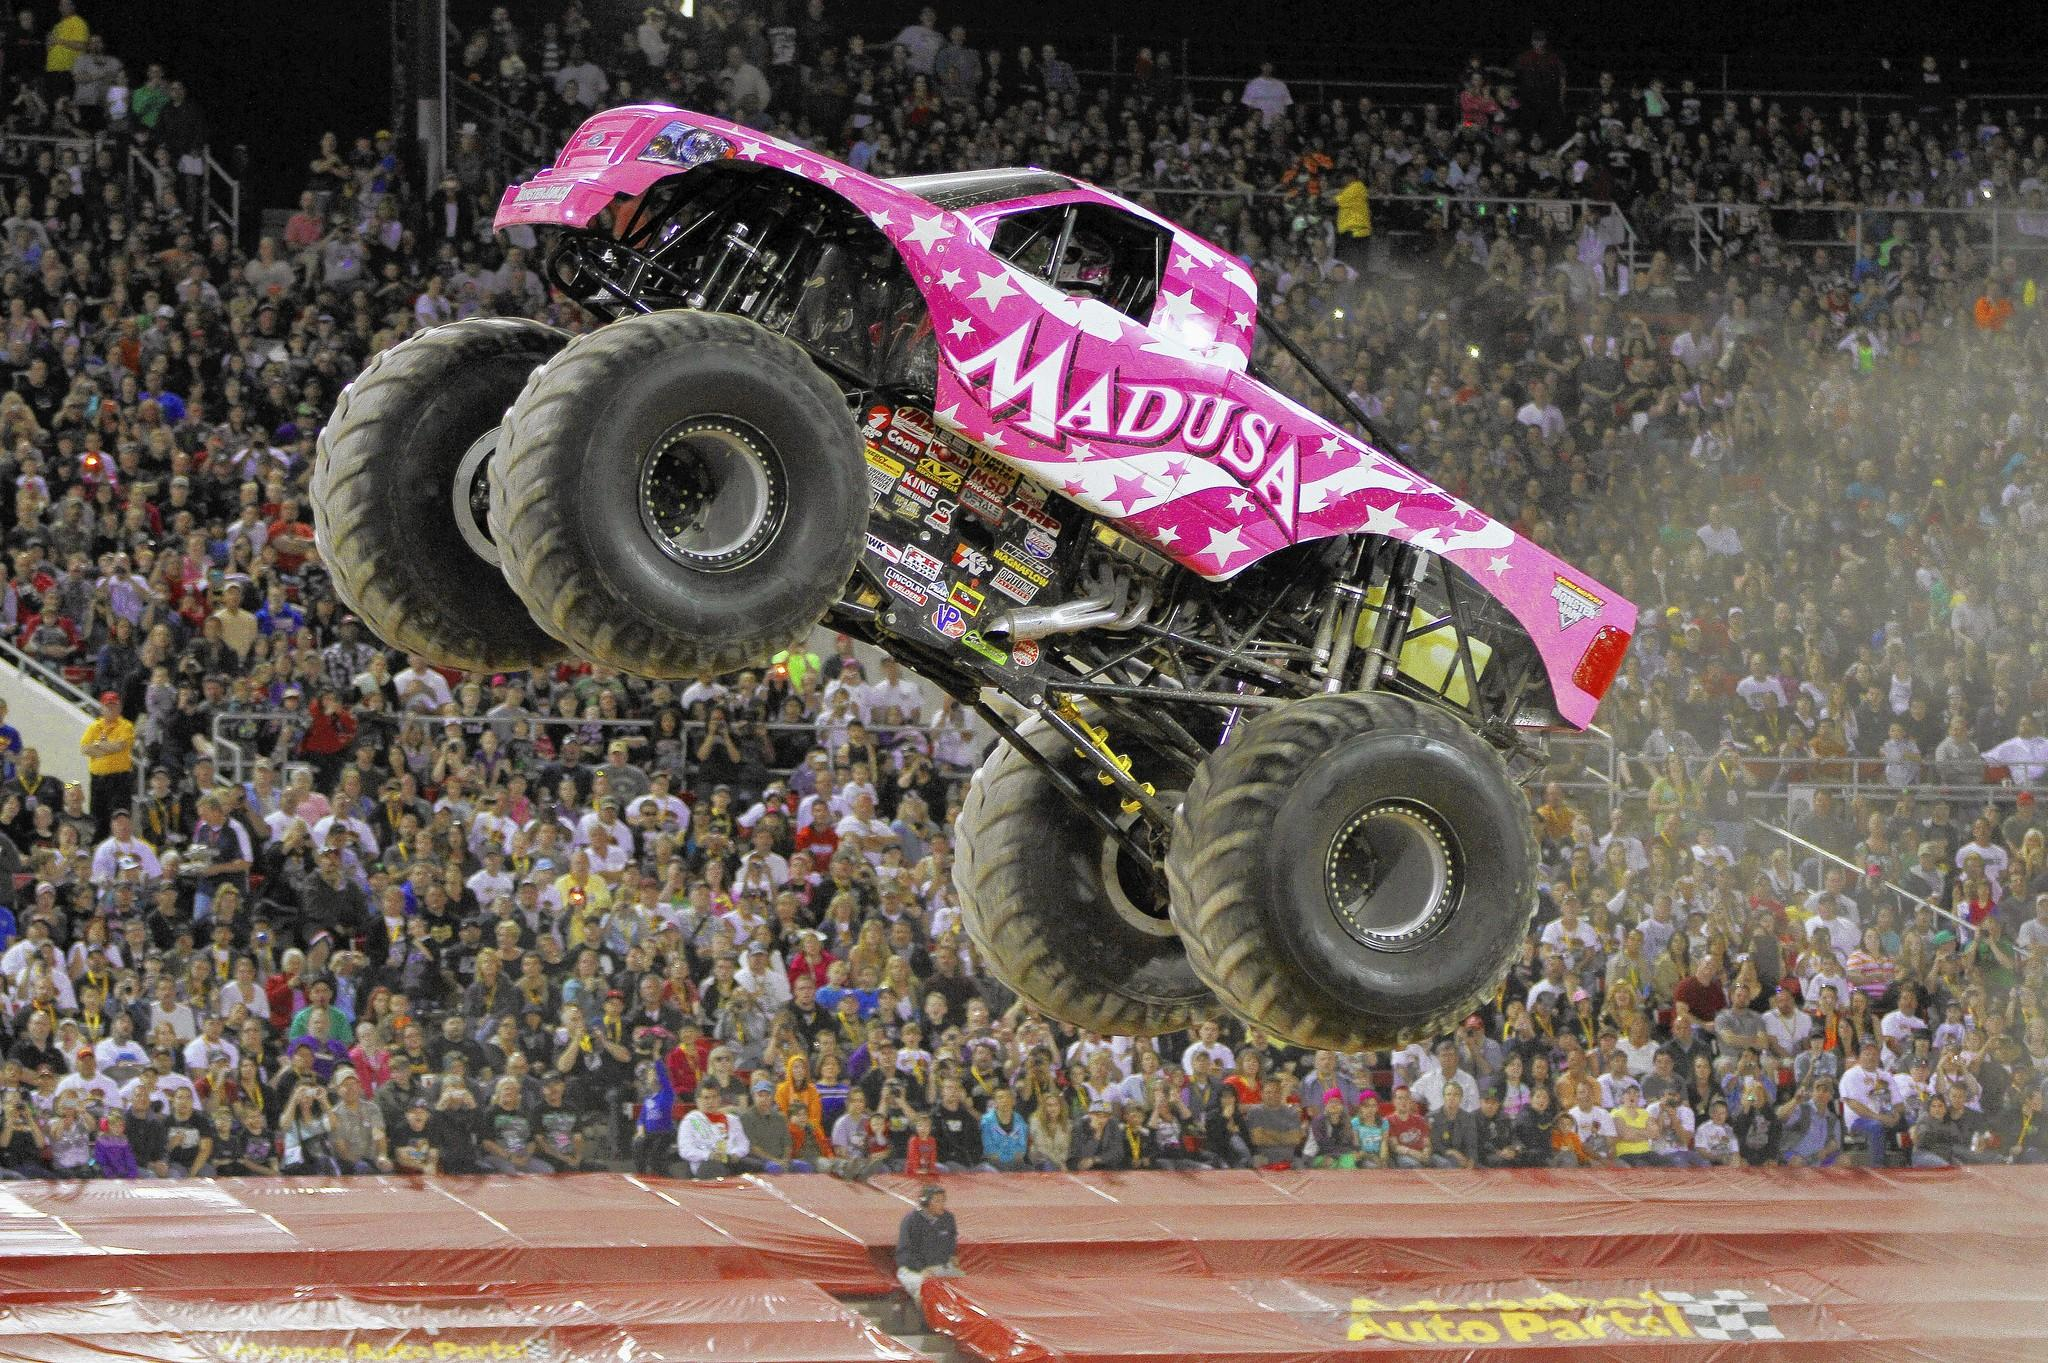 Monster Jam is at the Webster Bank Arena in Bridgeport March 7 to 9, featuring Madusa in her first appearance in Bridgeport.